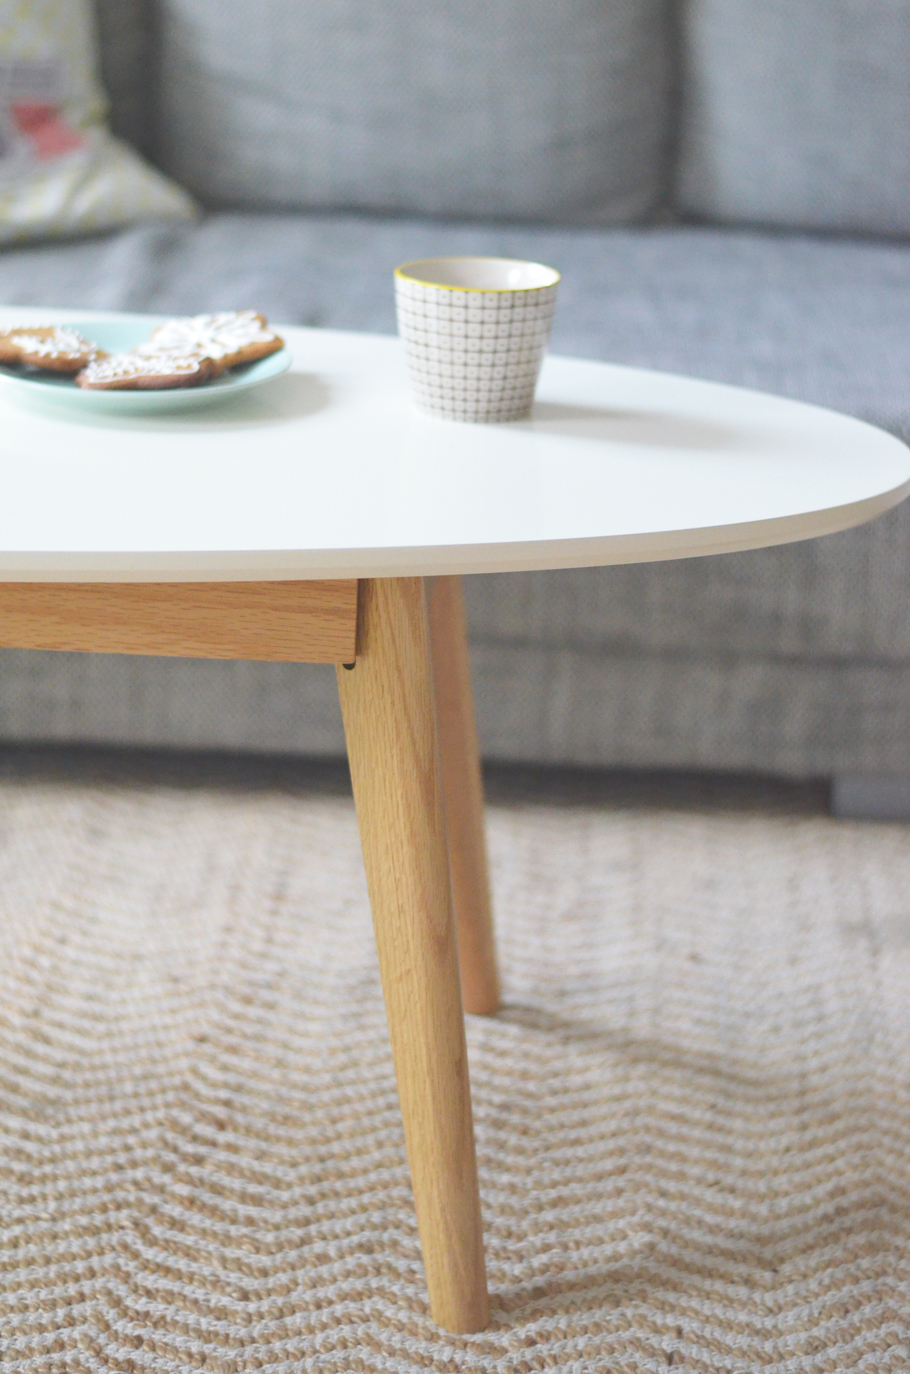 Table de salon scandinave maison design Table triangulaire scandinave